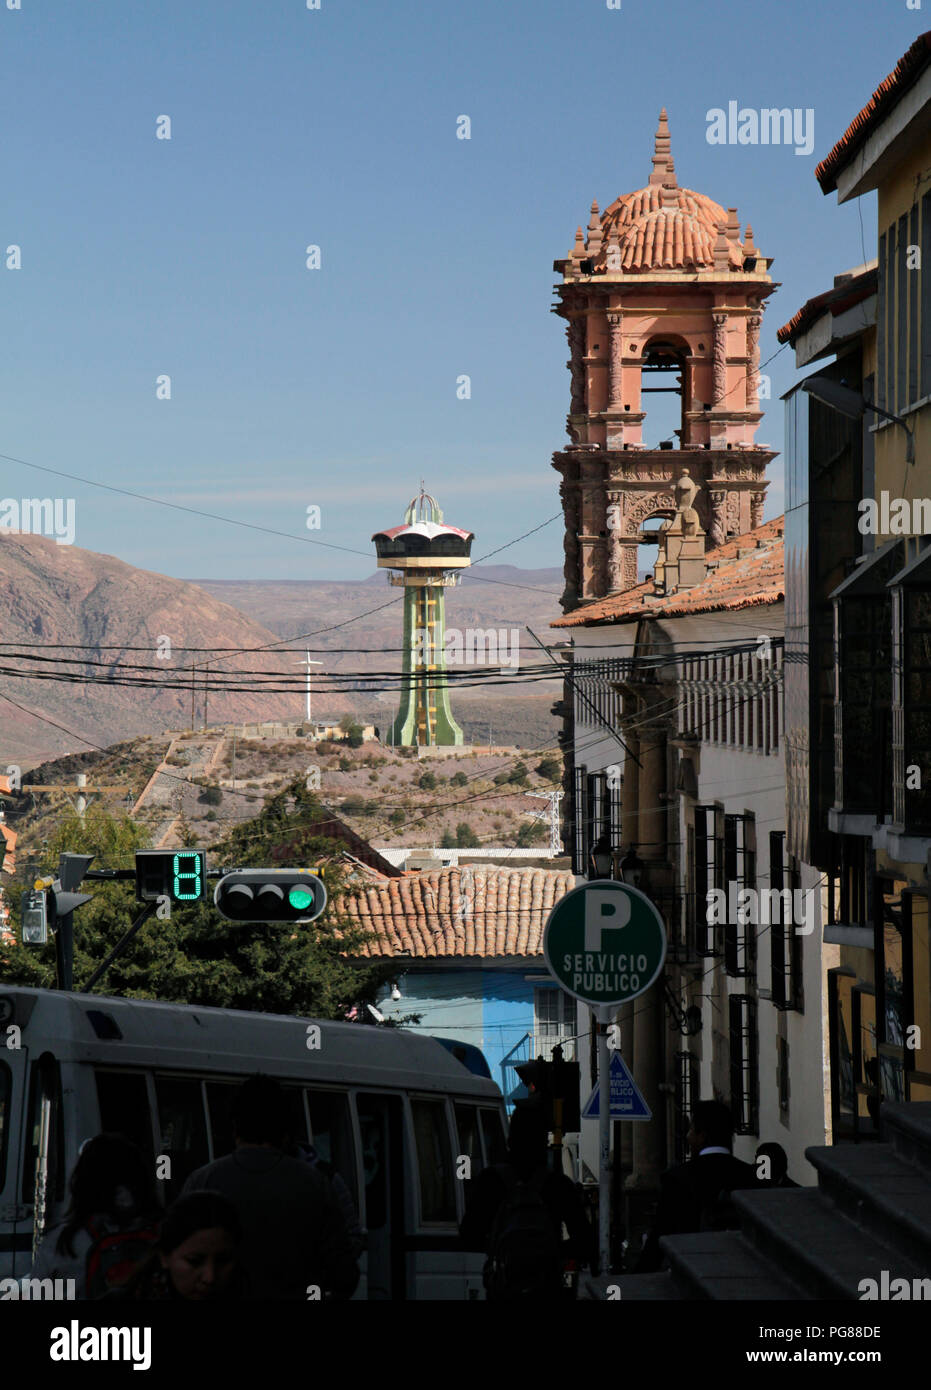 Potosi, Bolivia - June 10 2016: Pedestrians and vehicles going down a road in the city center of Potosi, Bolivia - Stock Image